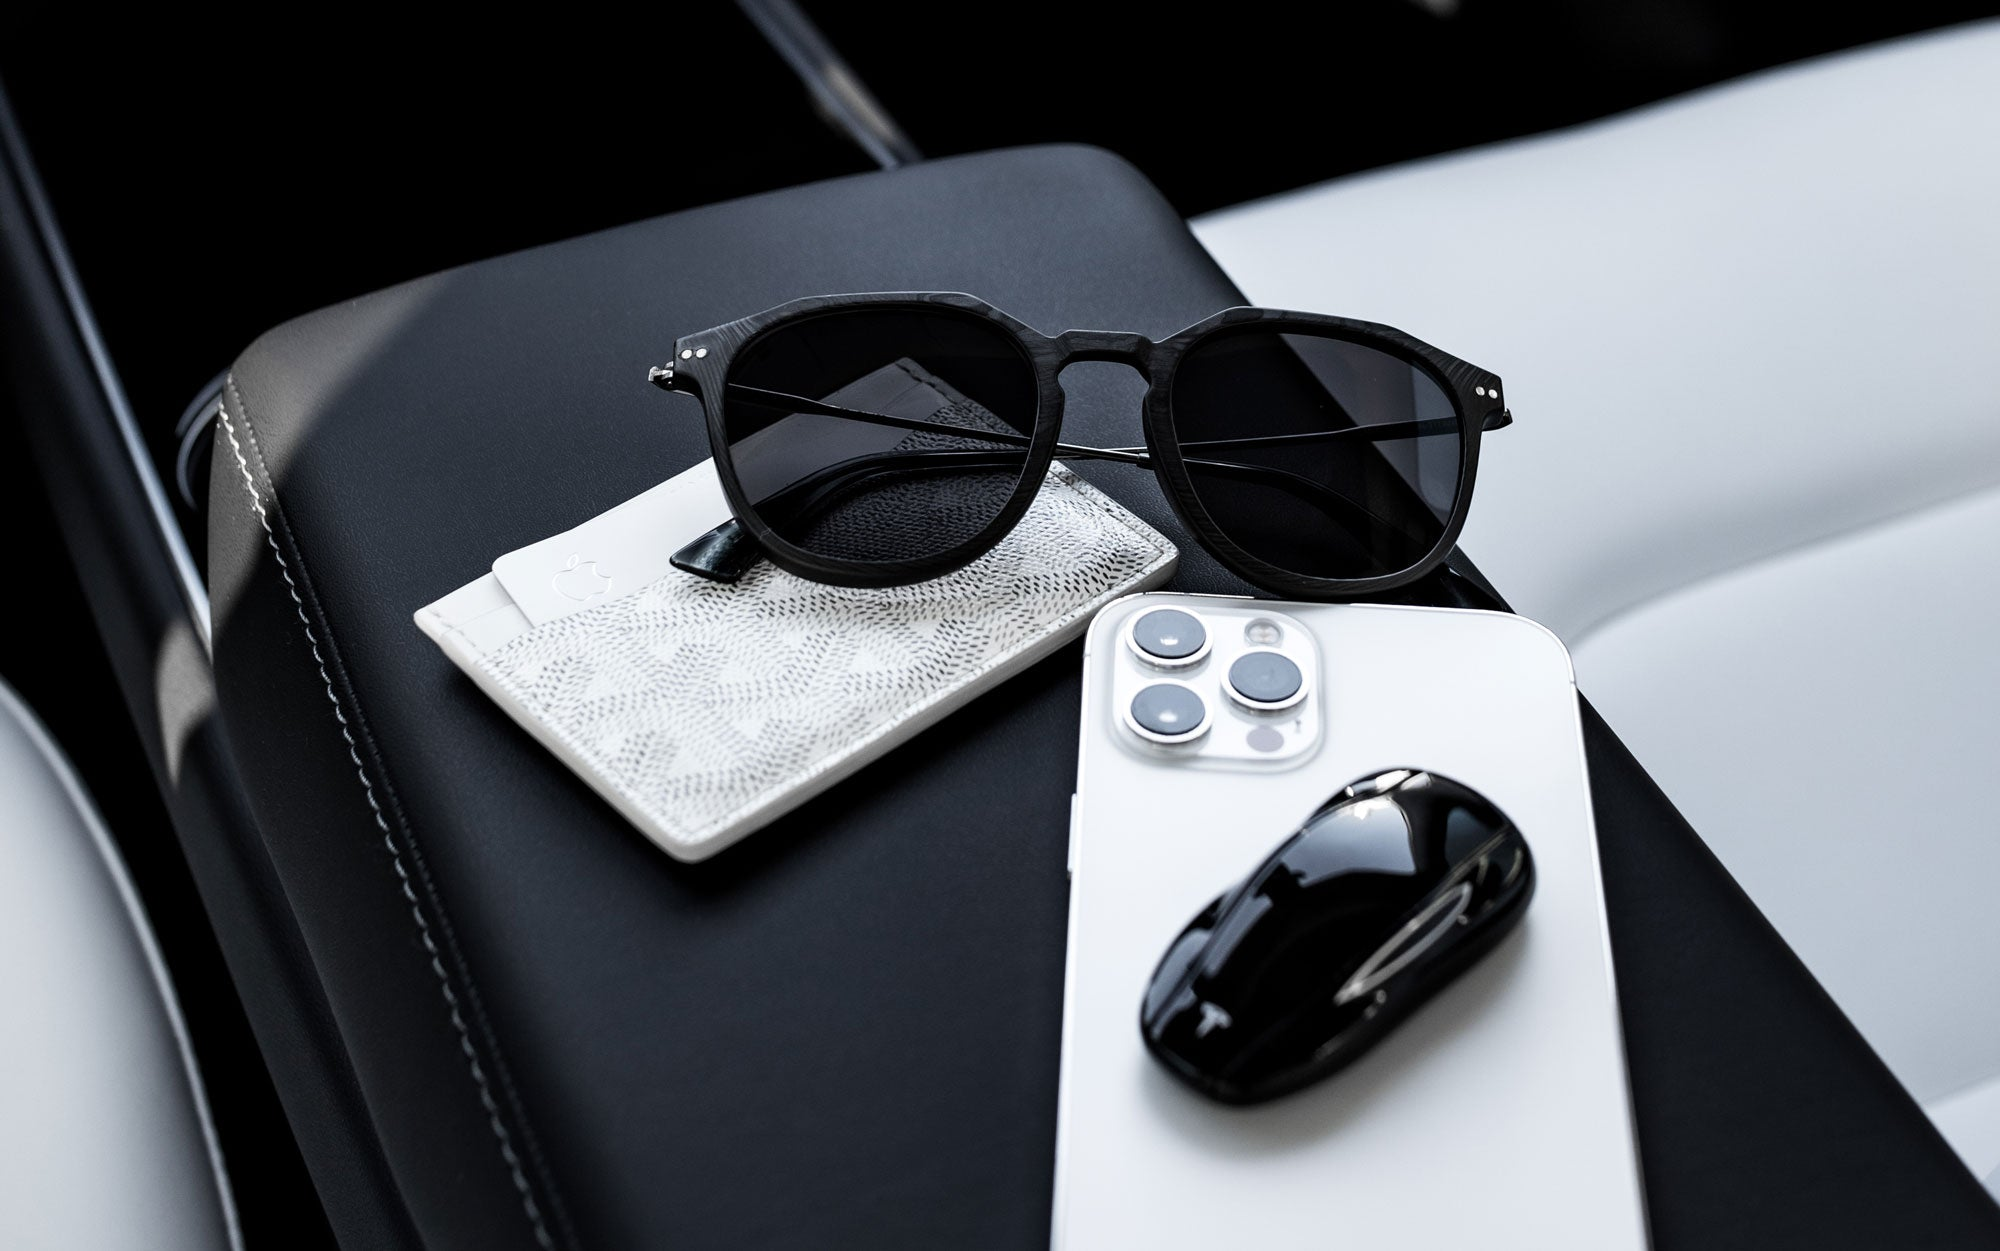 Roveri Eyewear all new CLM7 carbon-titanium sunglasses for men with Goyard card holder saint Sulpice and iPhone 12 max in Los Angeles.